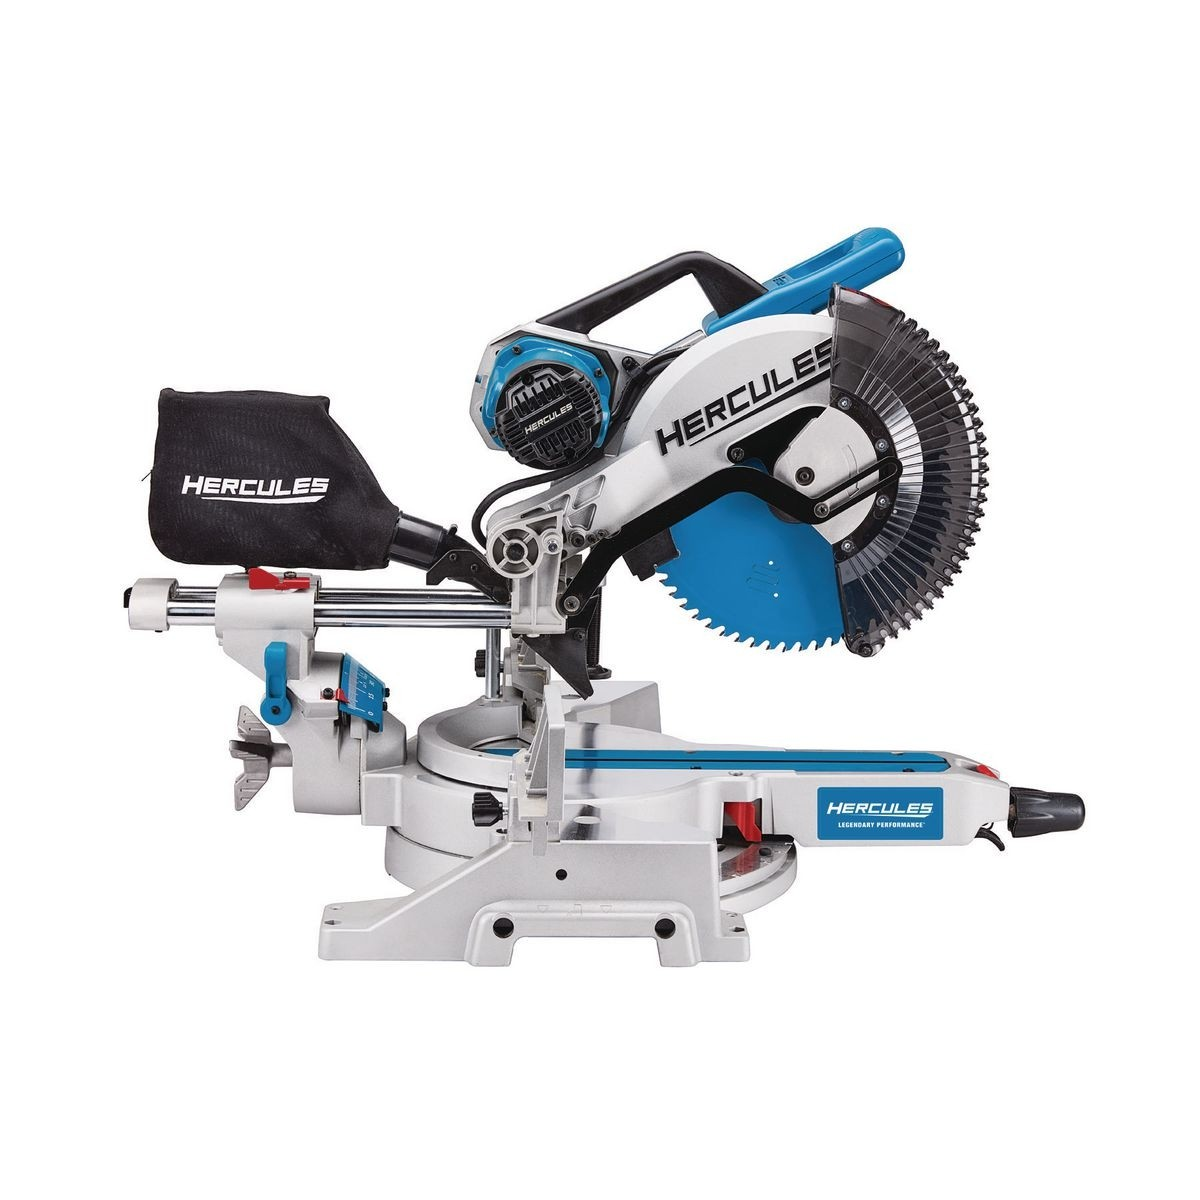 Hercules professional 12 double bevel sliding miter saw is it a so to answer the question does the hercules compare to the dewalt dws780 yes and no yes because all main features and specs are similar but no because greentooth Image collections